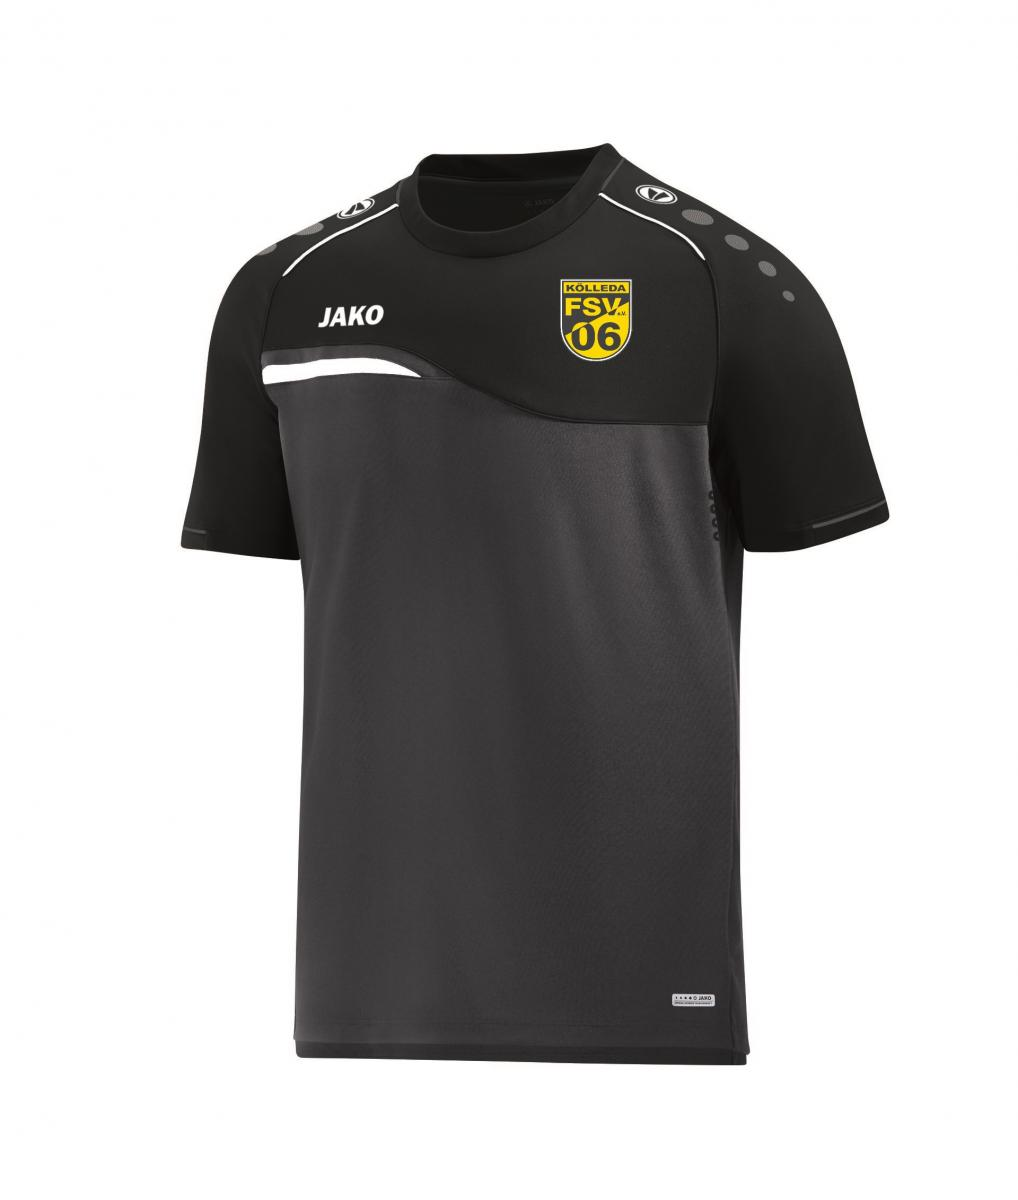 Anthrazit Schwarz T Shirt Competition 2 Fsv 06 Kölleda Anthrazit Schwarz 164